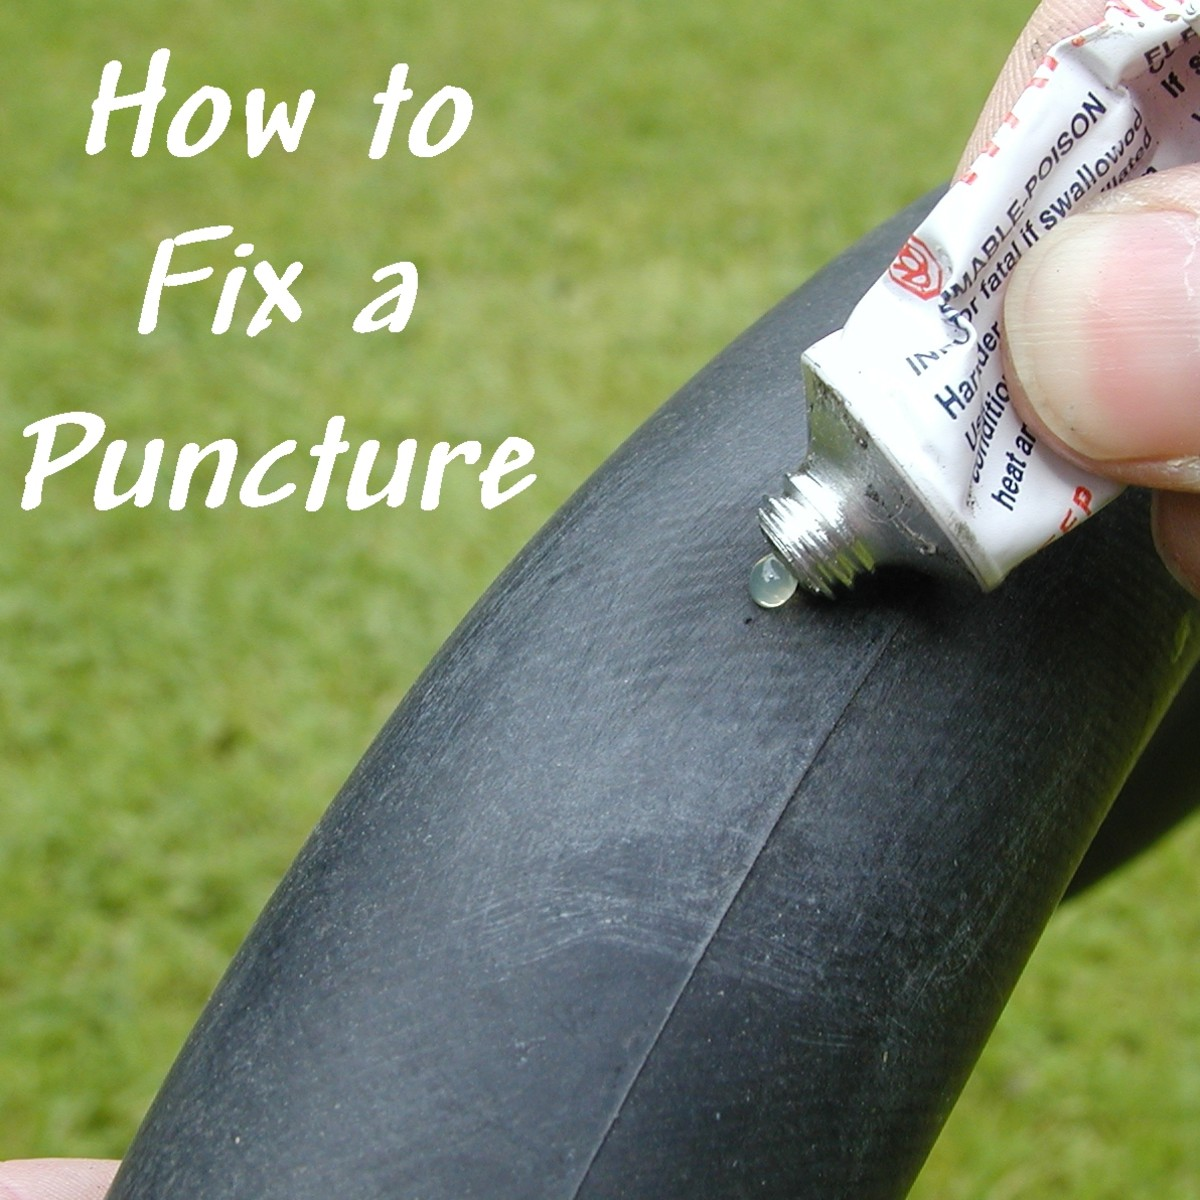 How to repair a flat